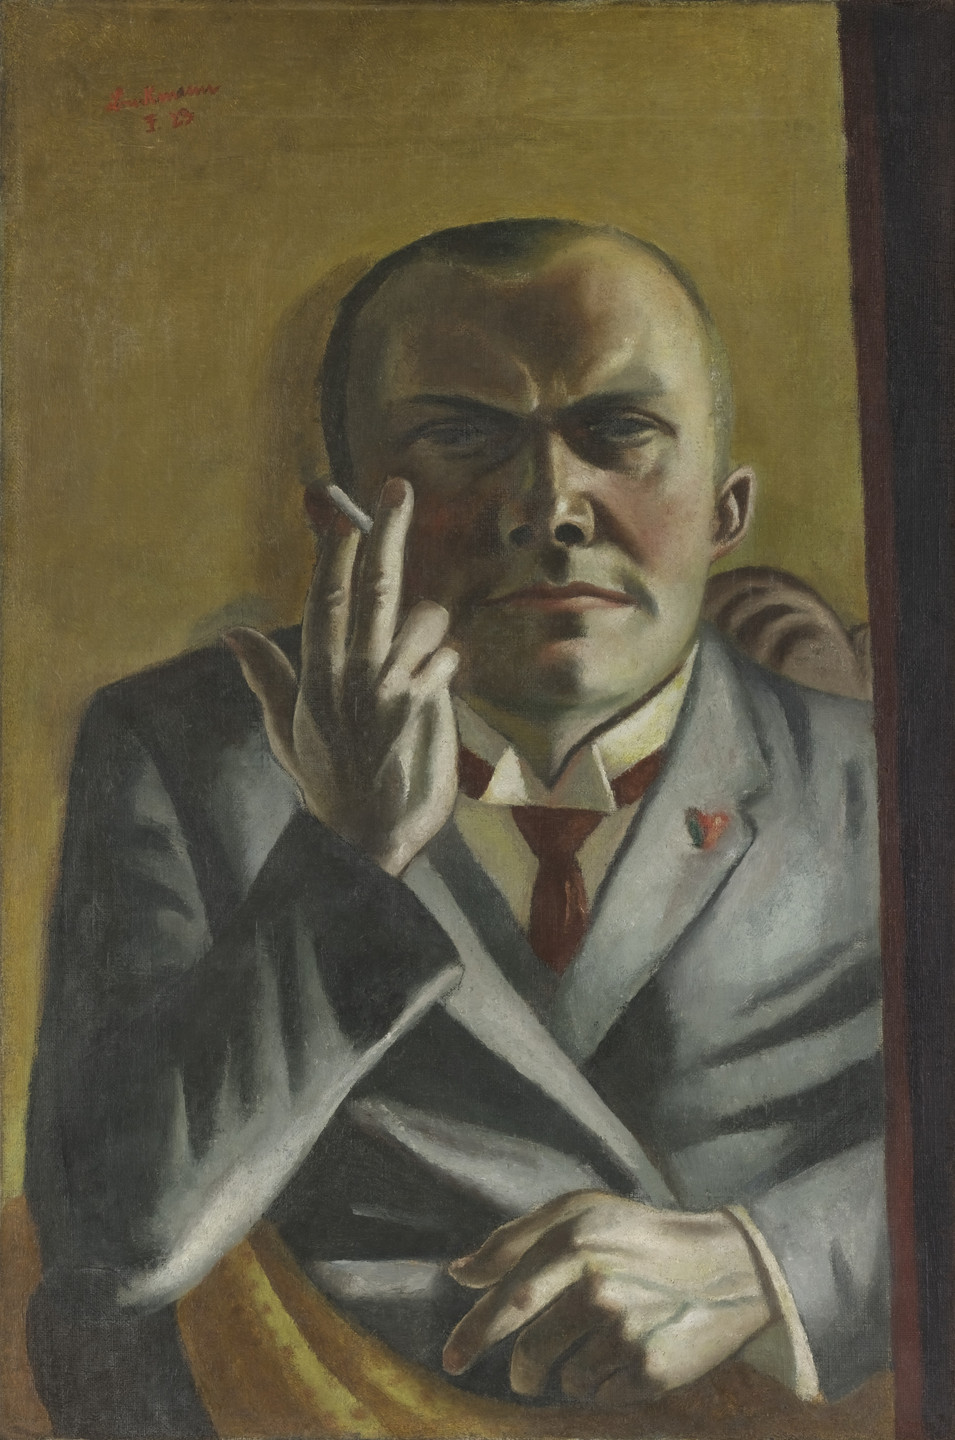 Max Beckmann. Self-Portrait with a Cigarette. Frankfurt 1923